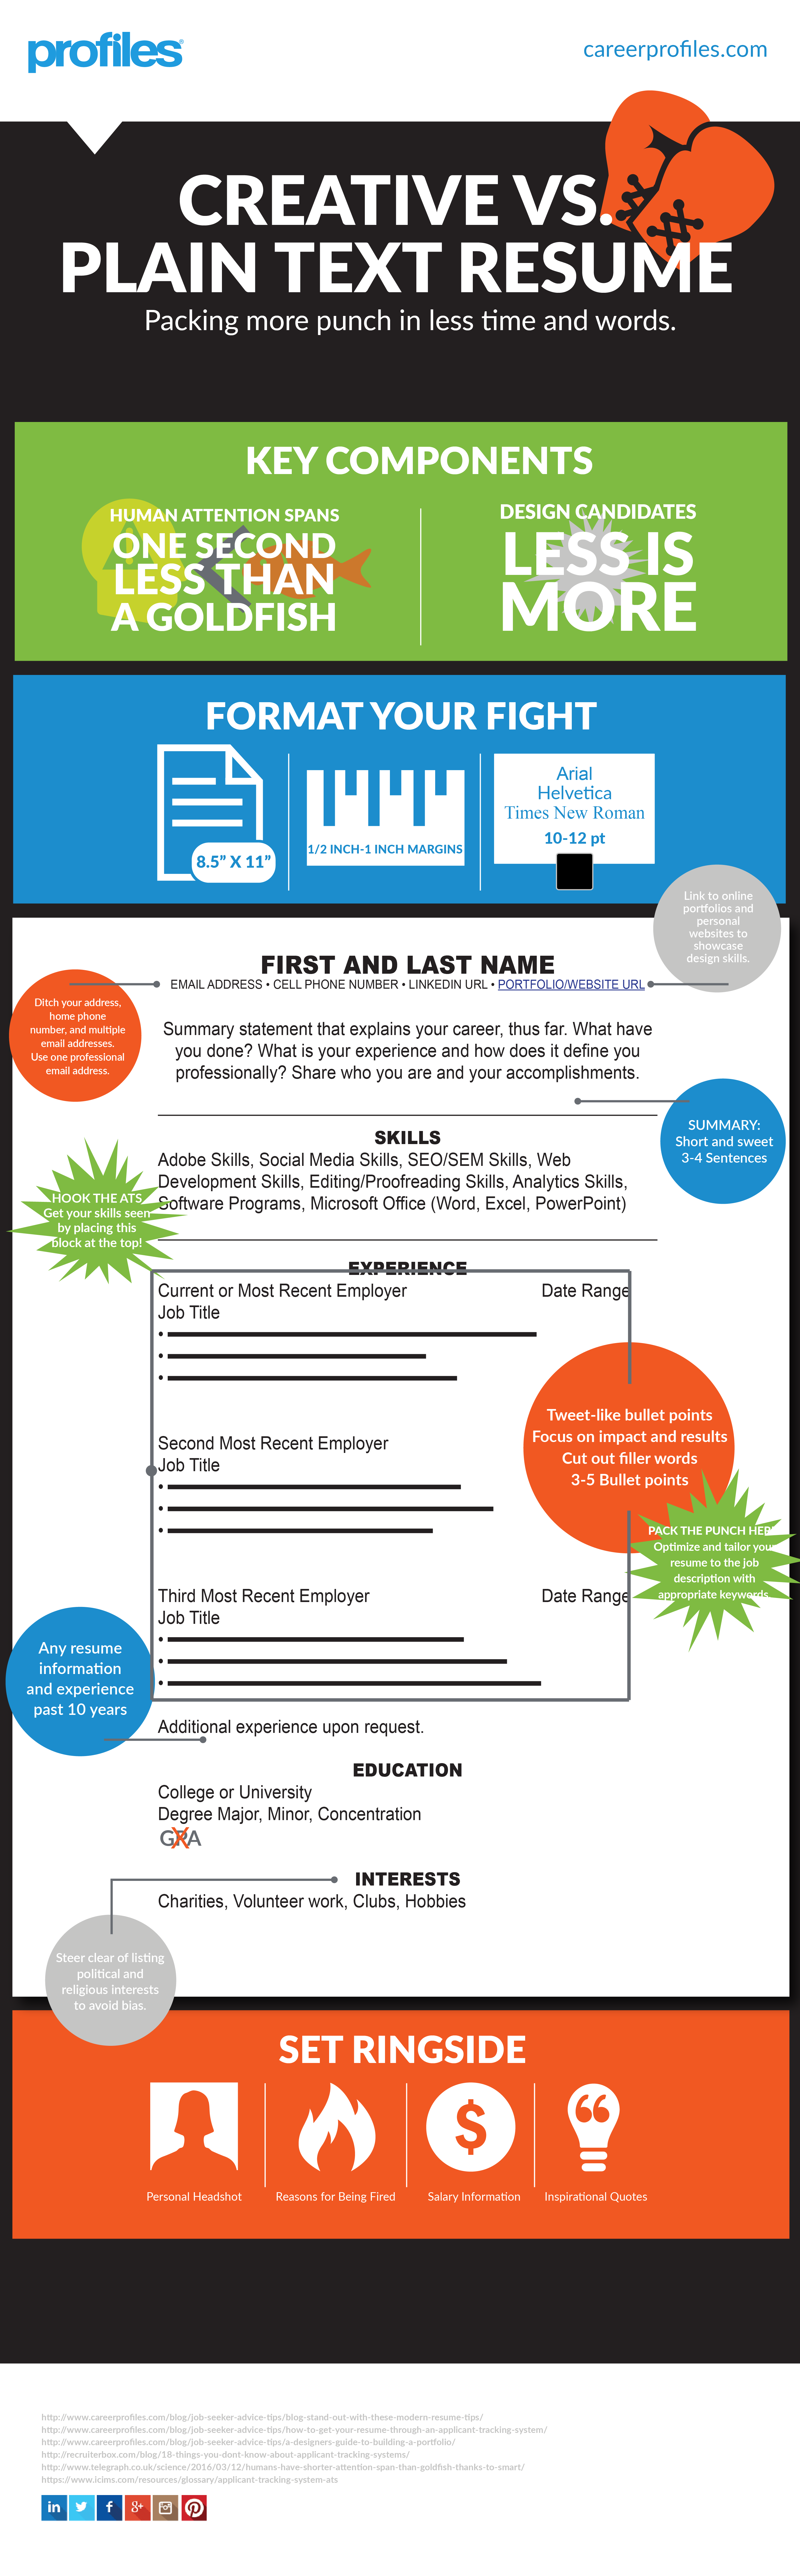 Best ideas about Format Of Resume on Pinterest   Resume writing     SlideShare